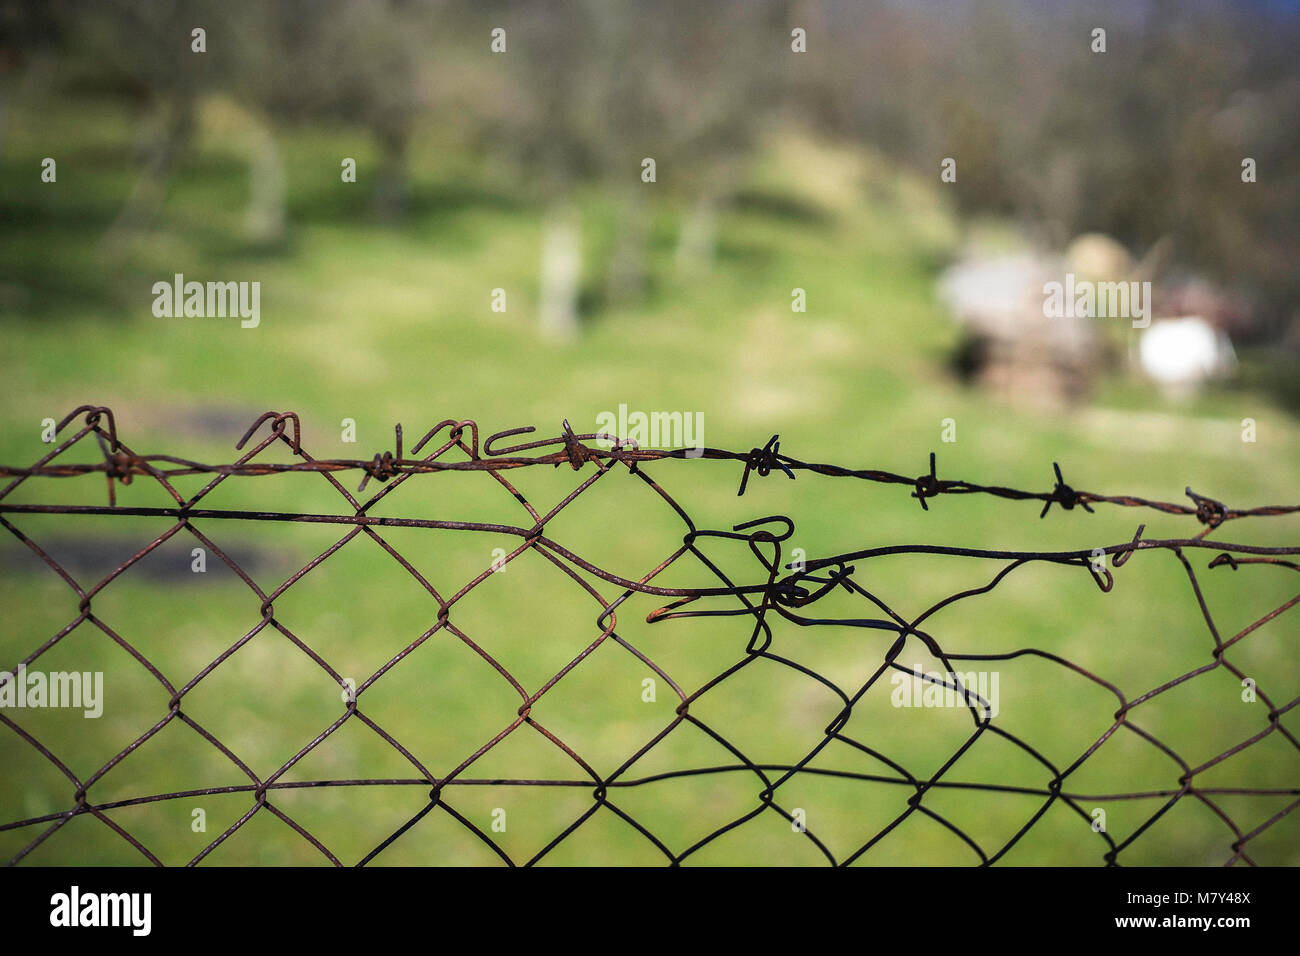 Field through the barbed wire fence, natural light - Stock Image